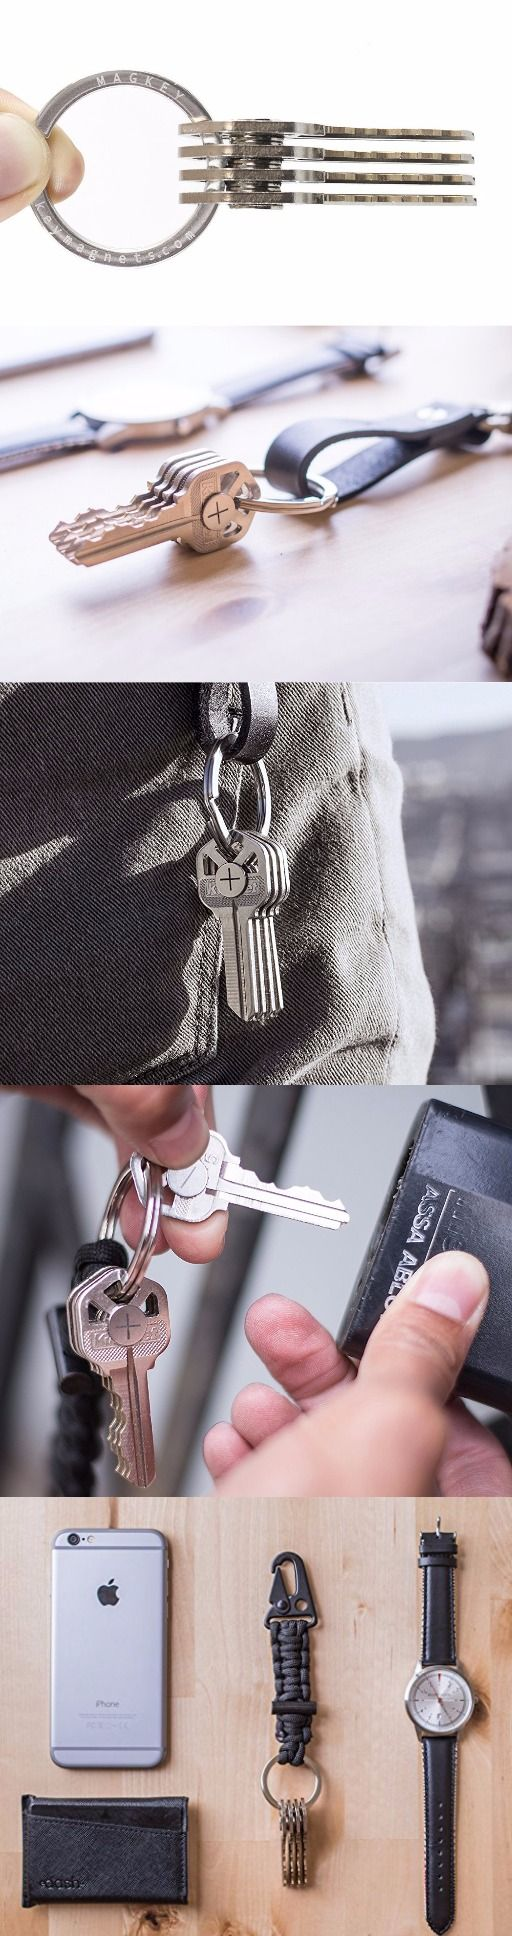 MAGKEY Stainless Steel Magnet EDC Everyday Carry Key Organizer Keychain Ring @aegisgears #everydaycarry